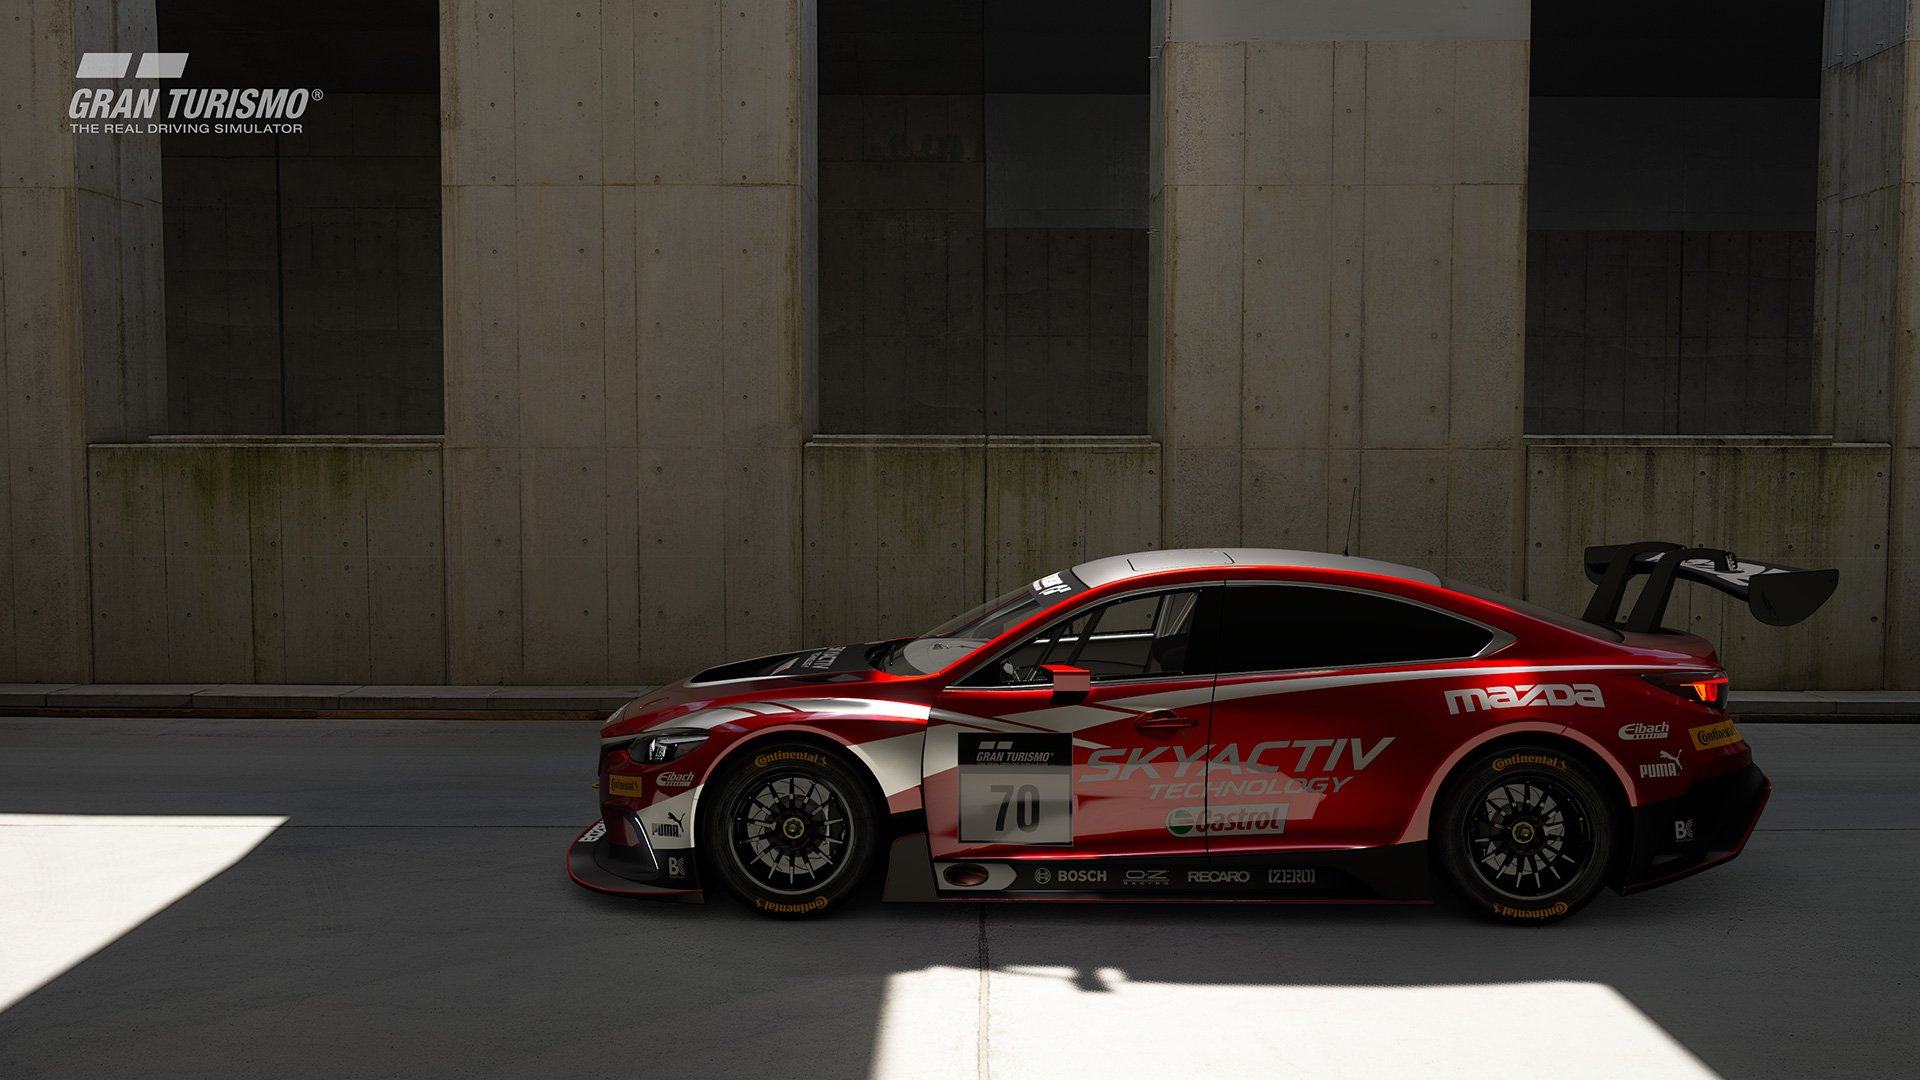 Gran Turismo Sport Mazda GT4 in front of wall